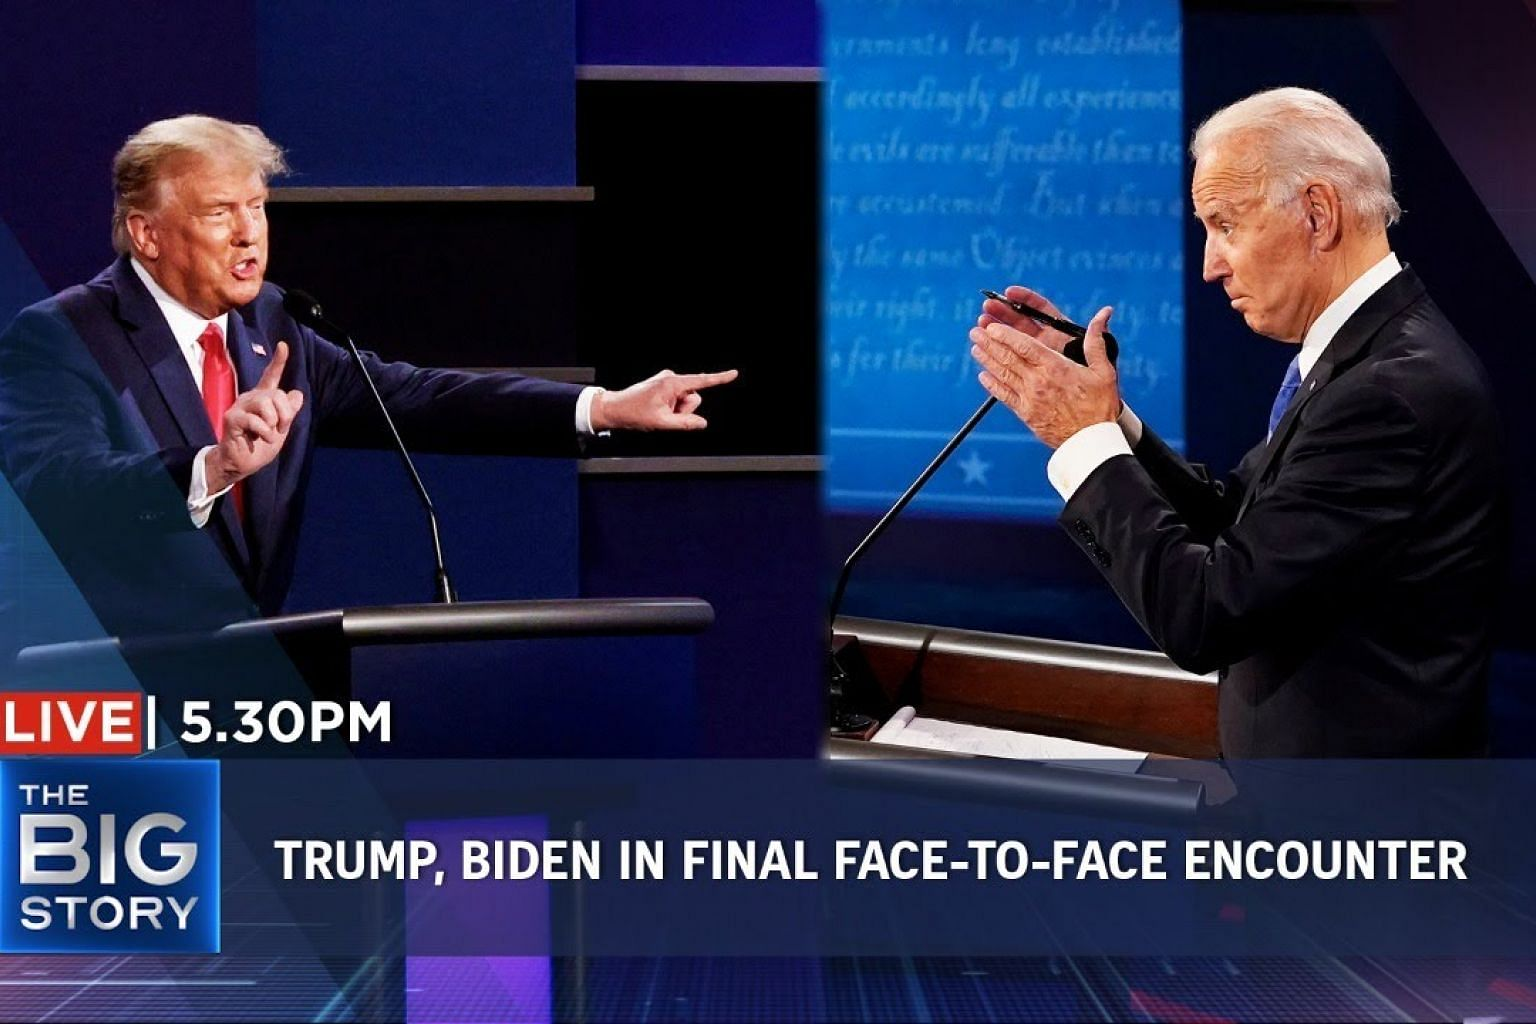 Trump, Biden fire personal jabs in final face-to-face encounter | THE BIG STORY